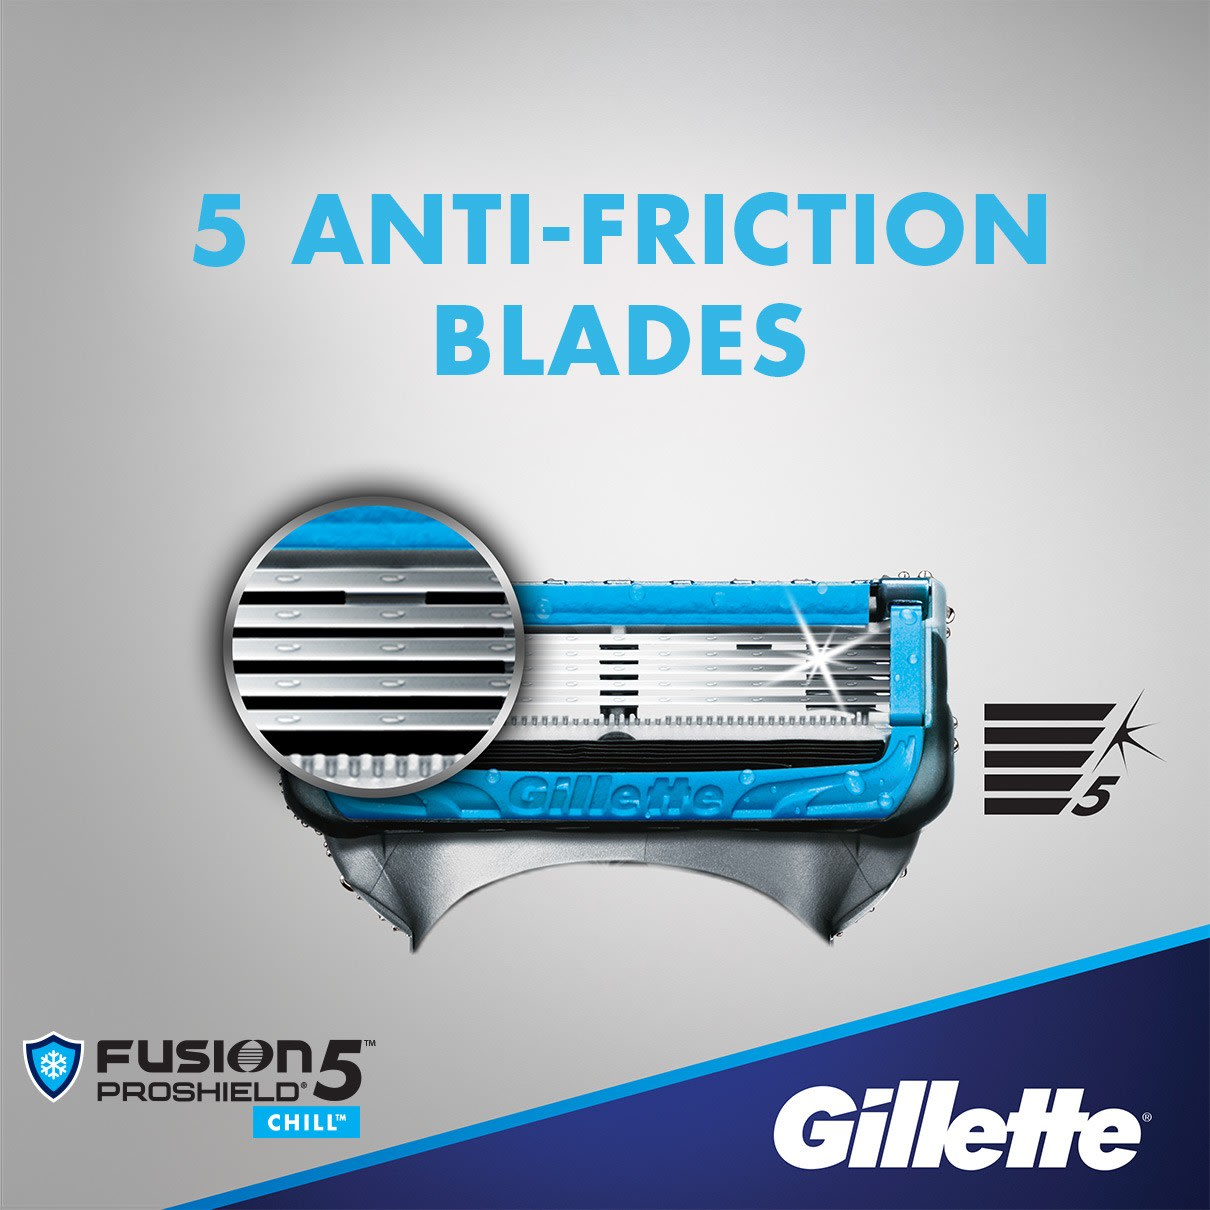 anti-friction blades